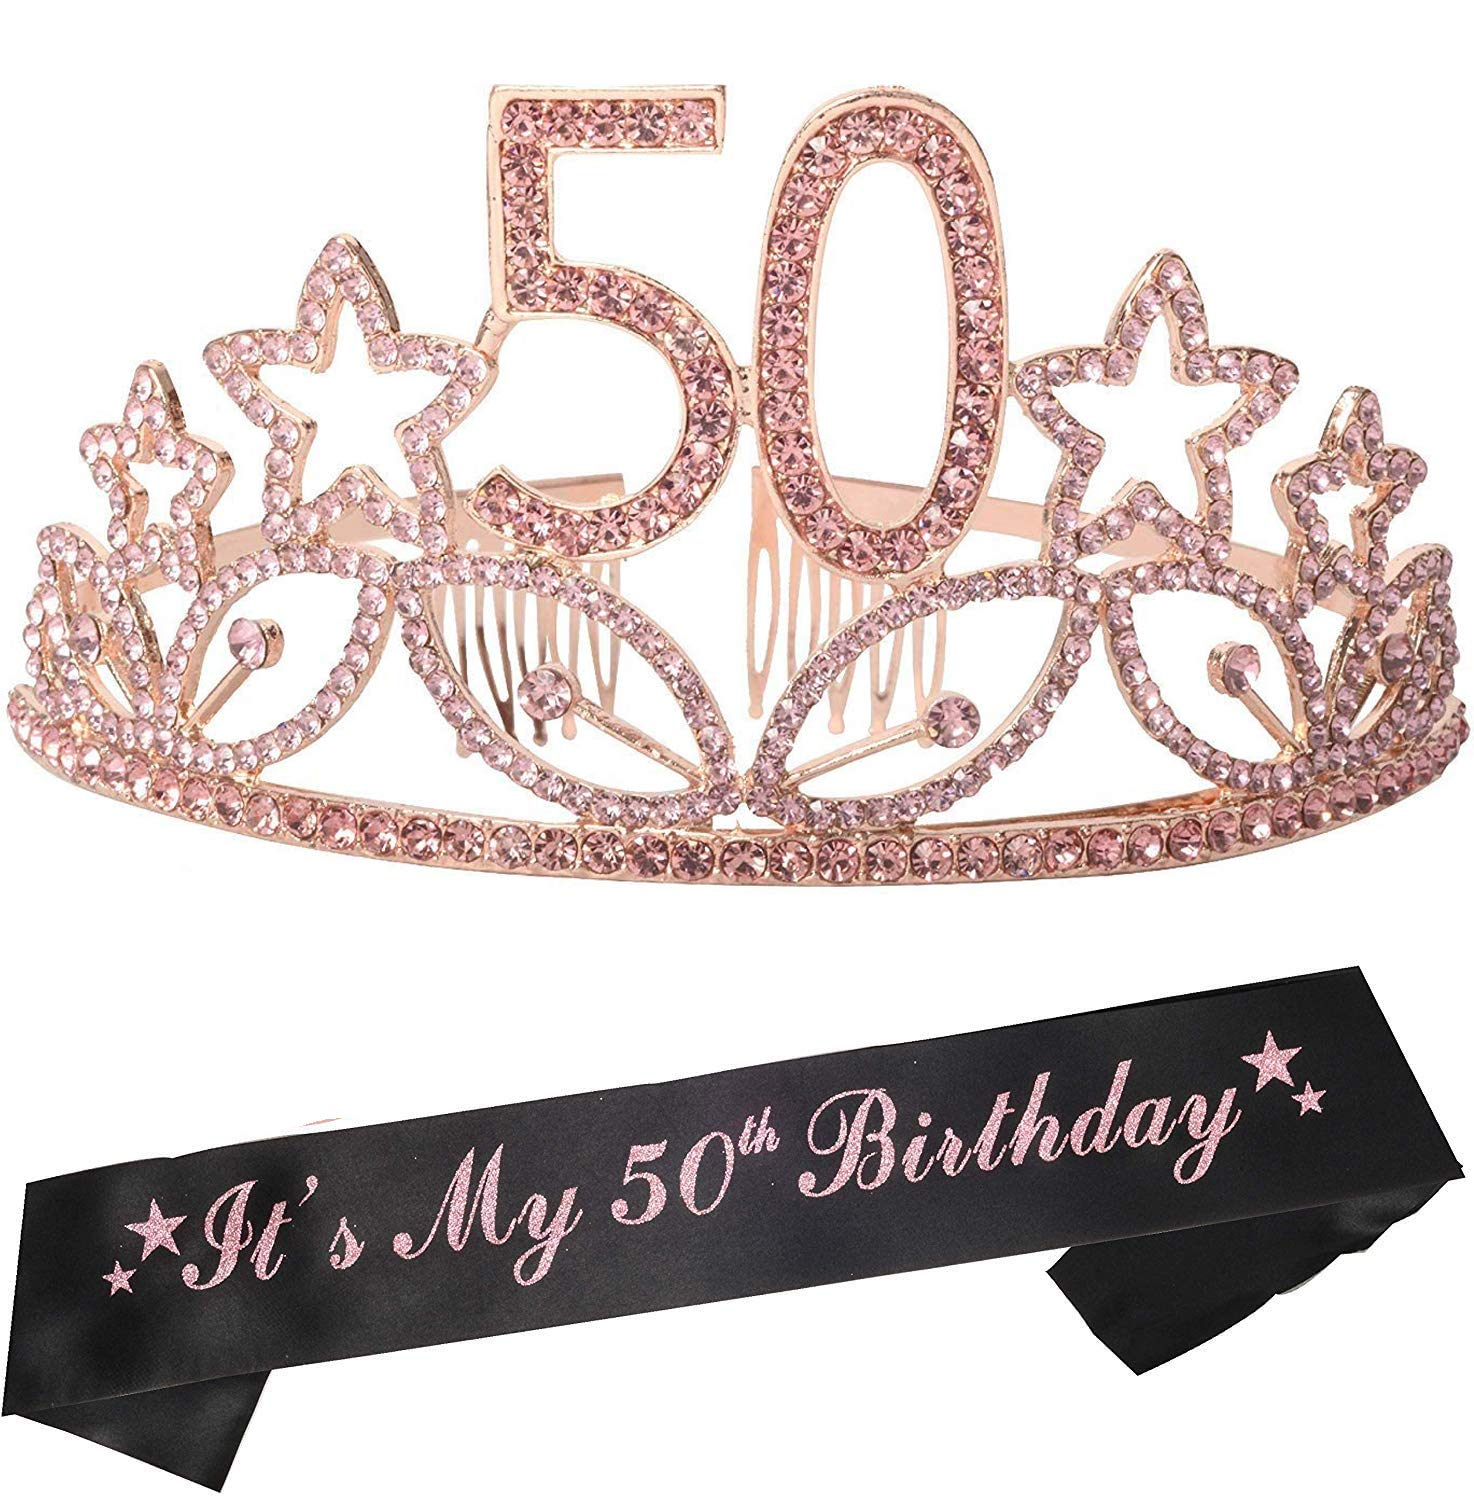 50th Birthday Gifts for Women, 50th Birthday Tiara and Sash, Happy 50th Birthday Party Supplies, 50th Birthday Sash and Tiara Birthday Crown for 50th Birthday Party Supplies and Decorations for Mother